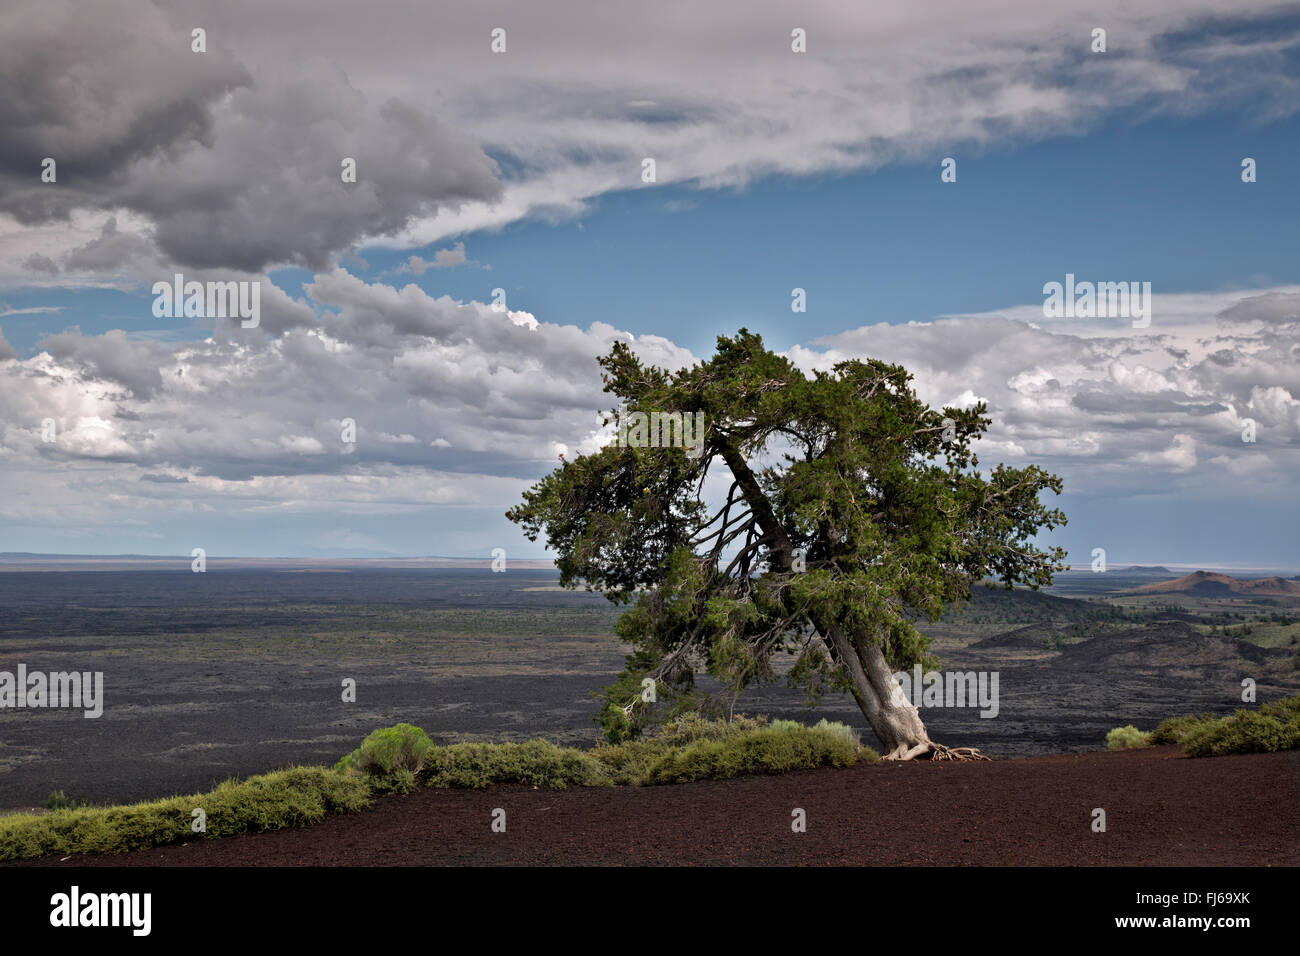 ID00474-00...IDAHO - Lone tree at the summit of Inferno Cone in Craters of the Moon National Monument and Preserve. - Stock Image